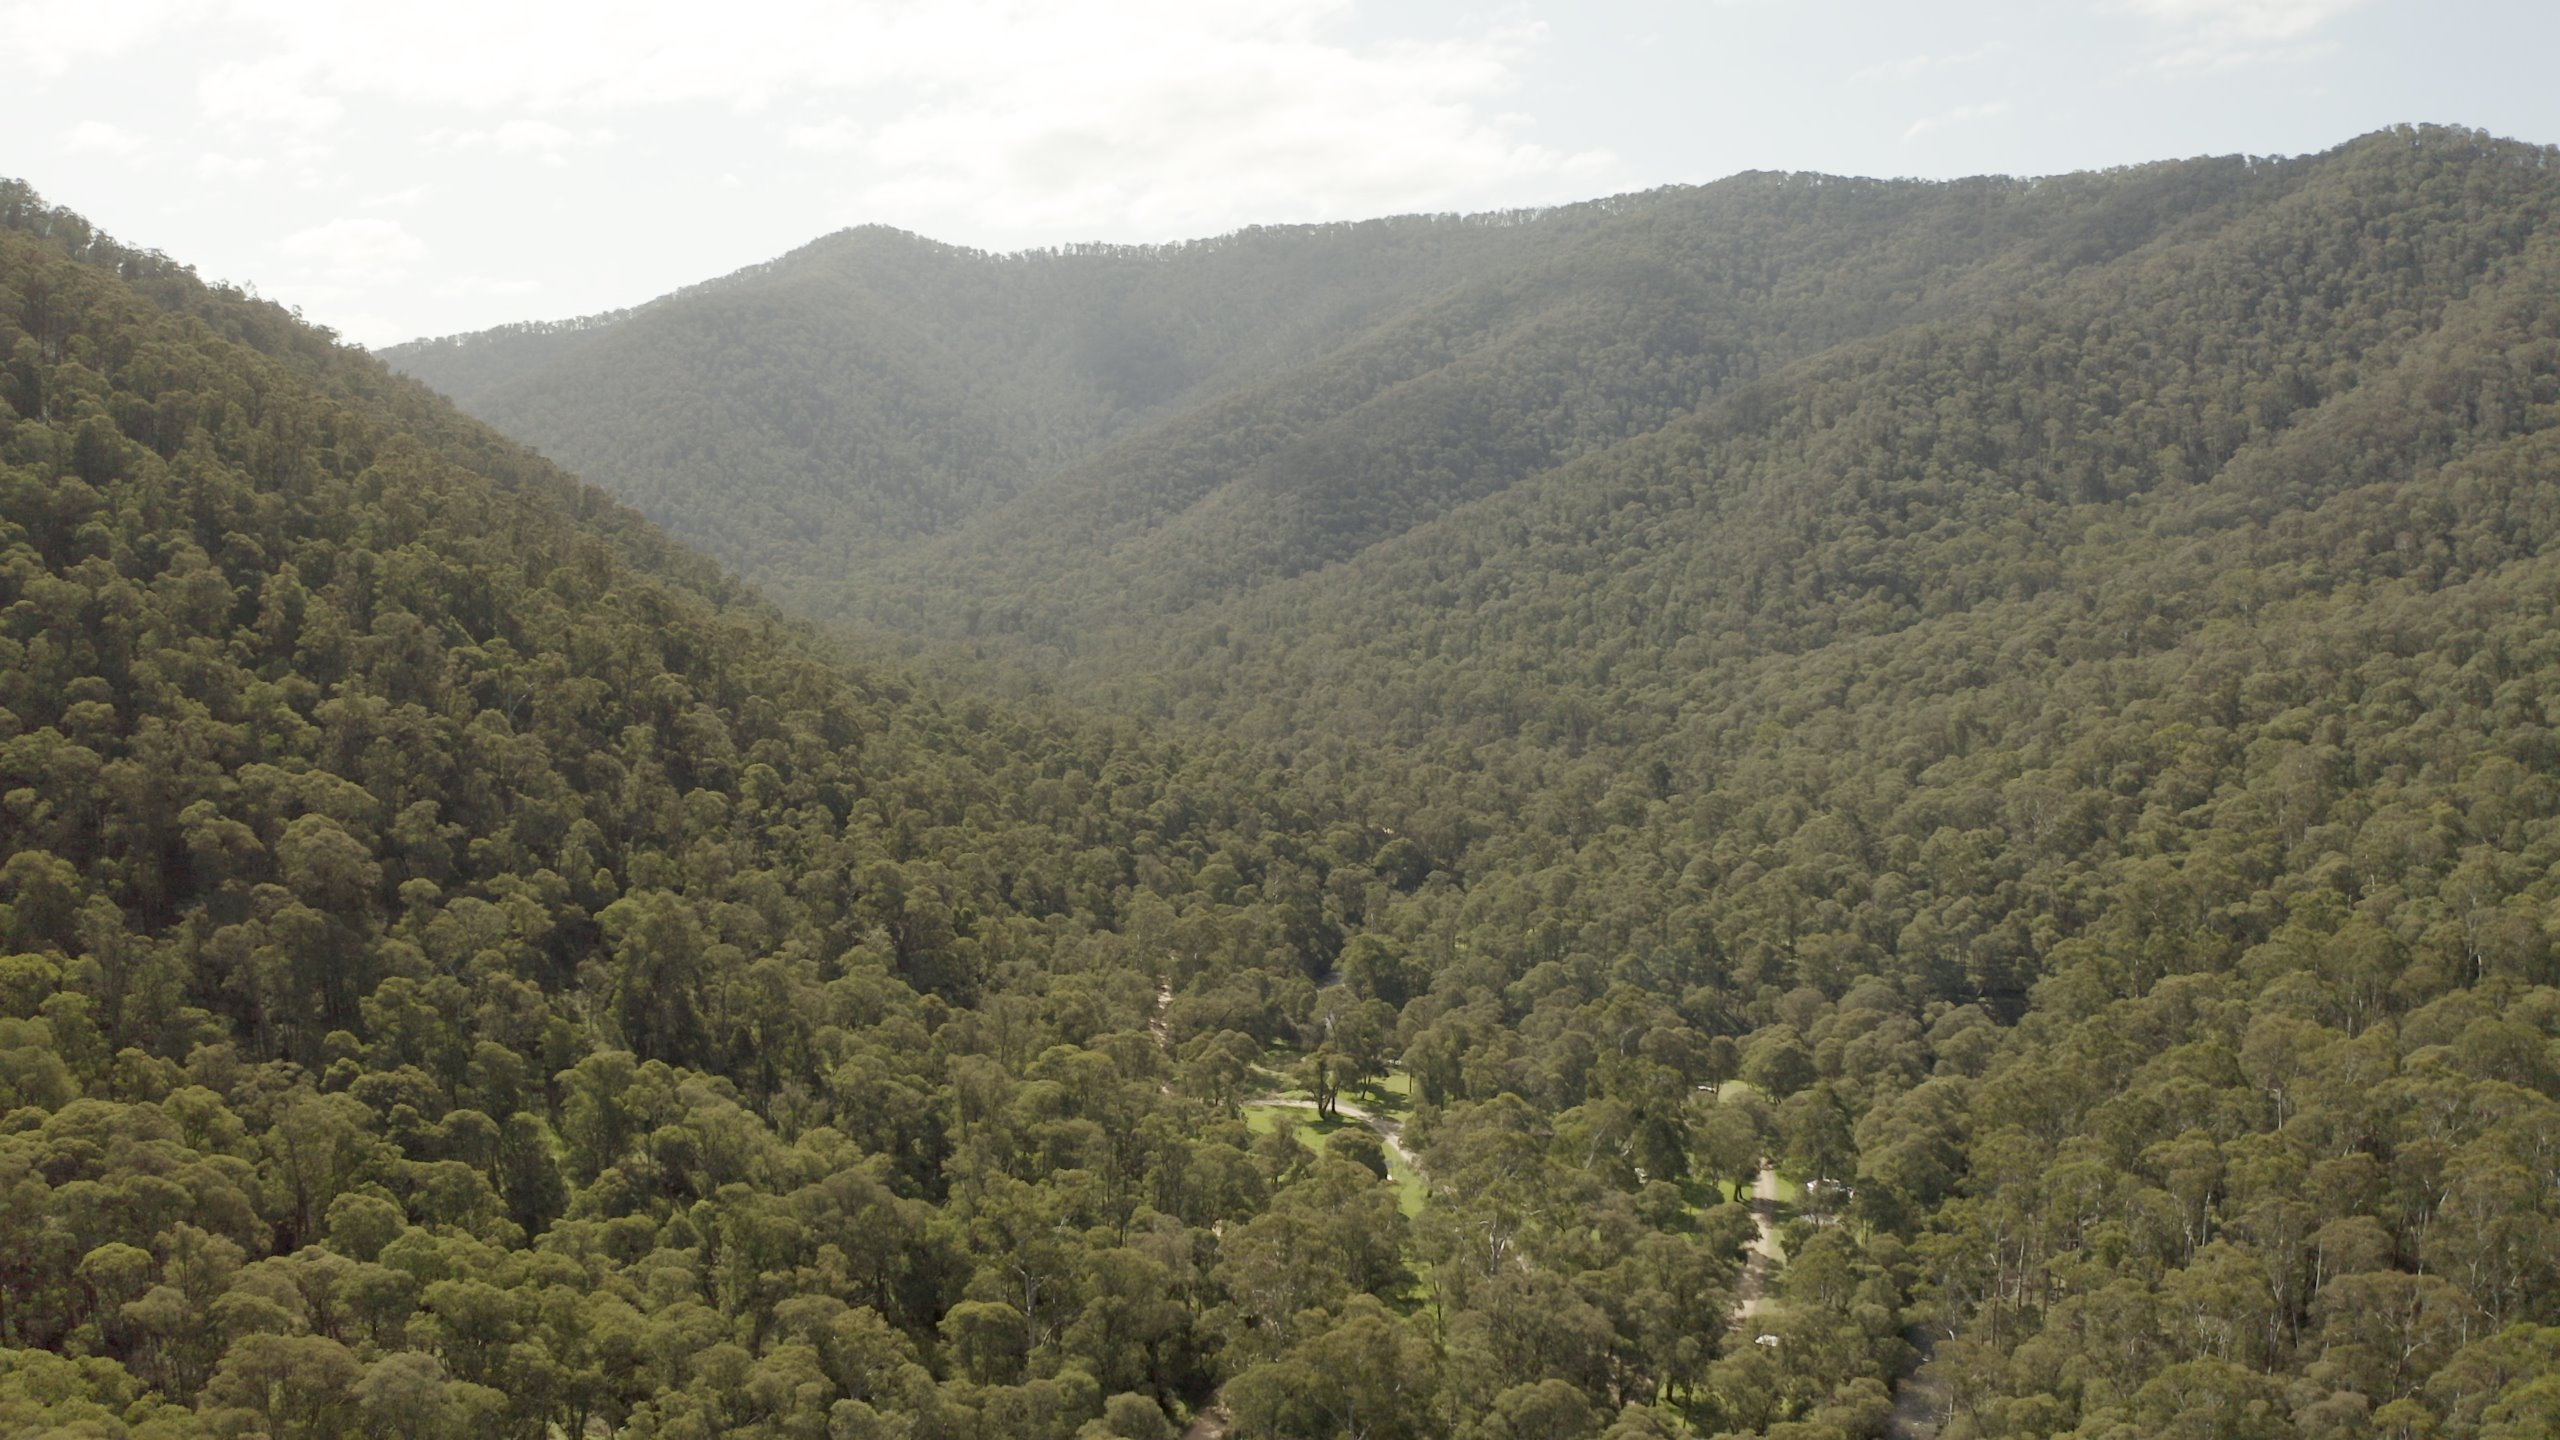 Aerial image of the Buckland River winding through forested hills